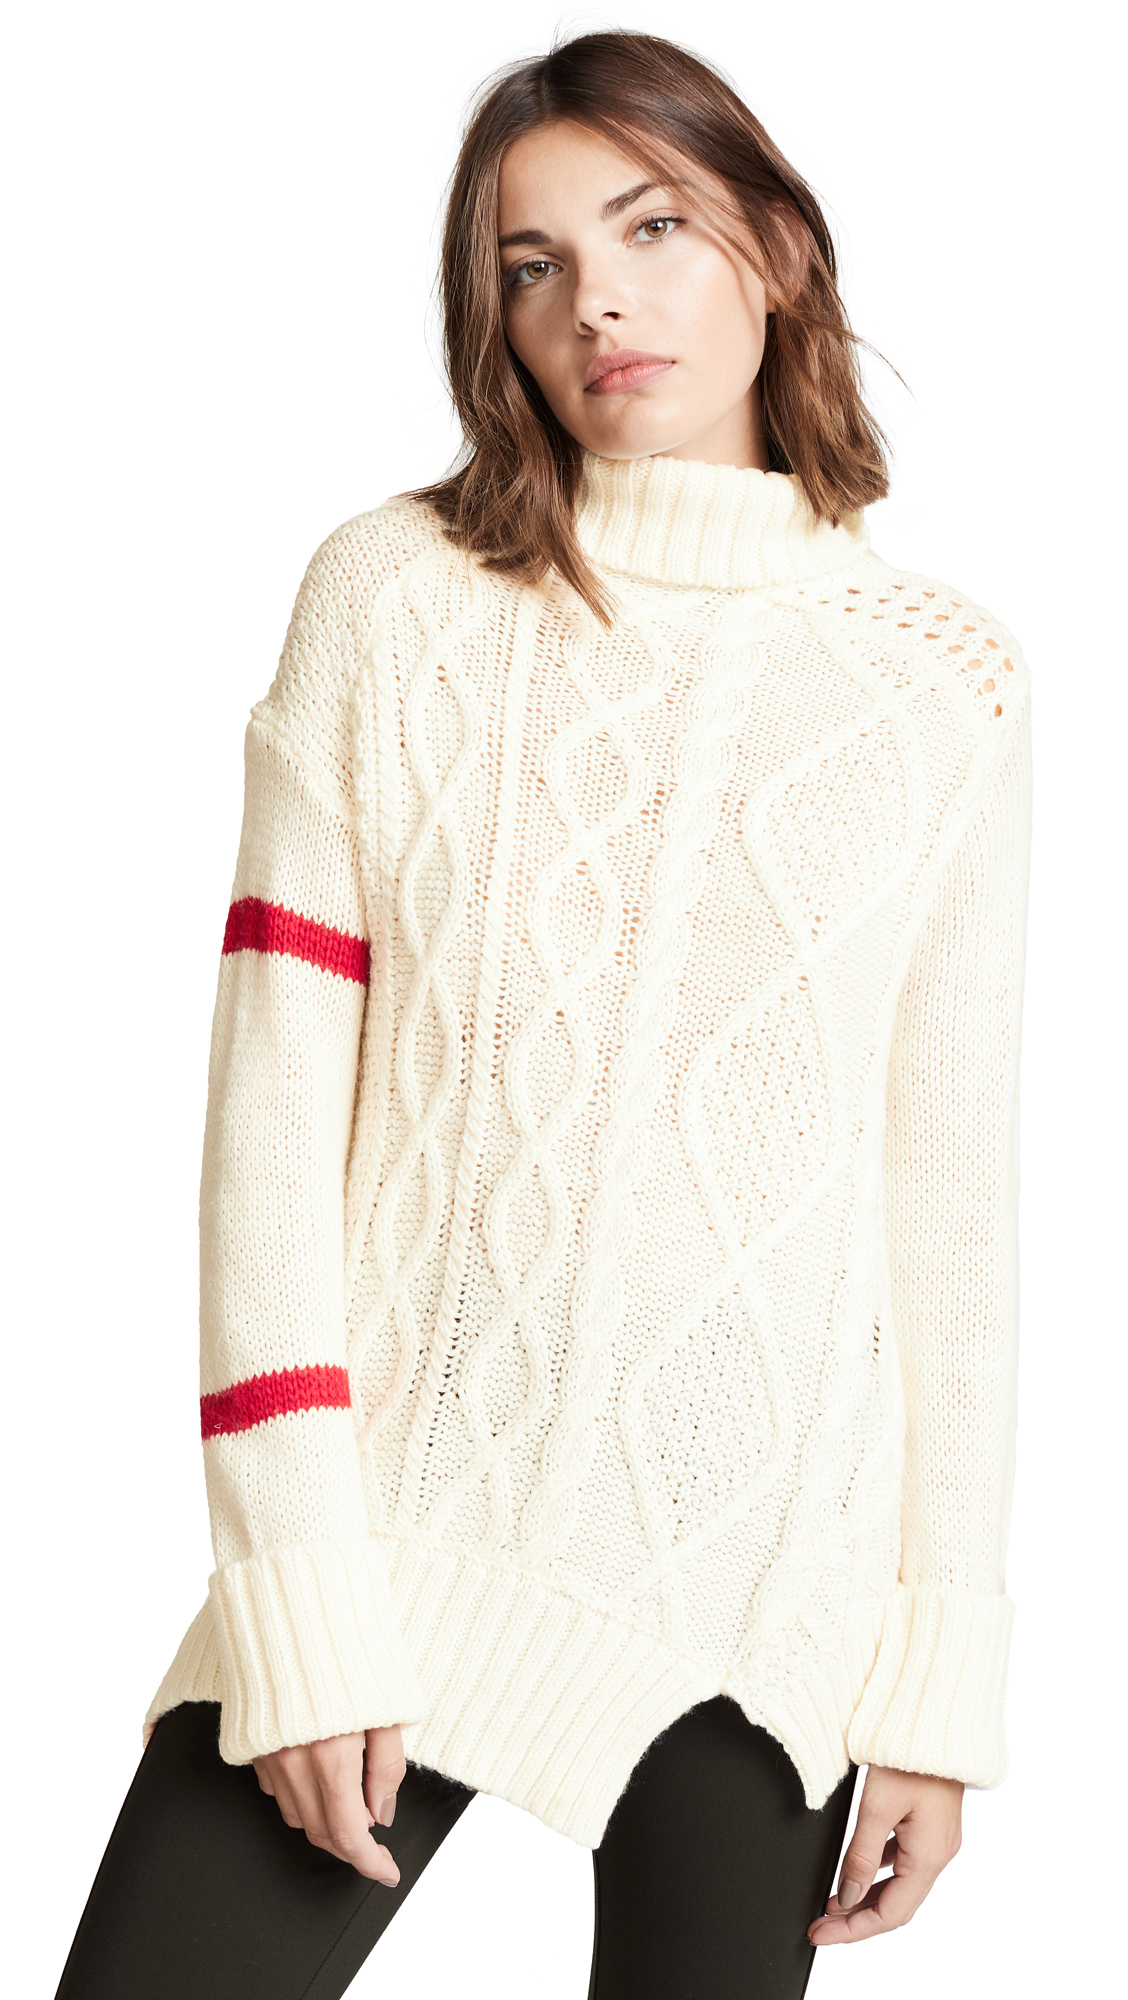 Preen By Thornton Bregazzi Preen Line Serenity Sweater In Ivory/Red